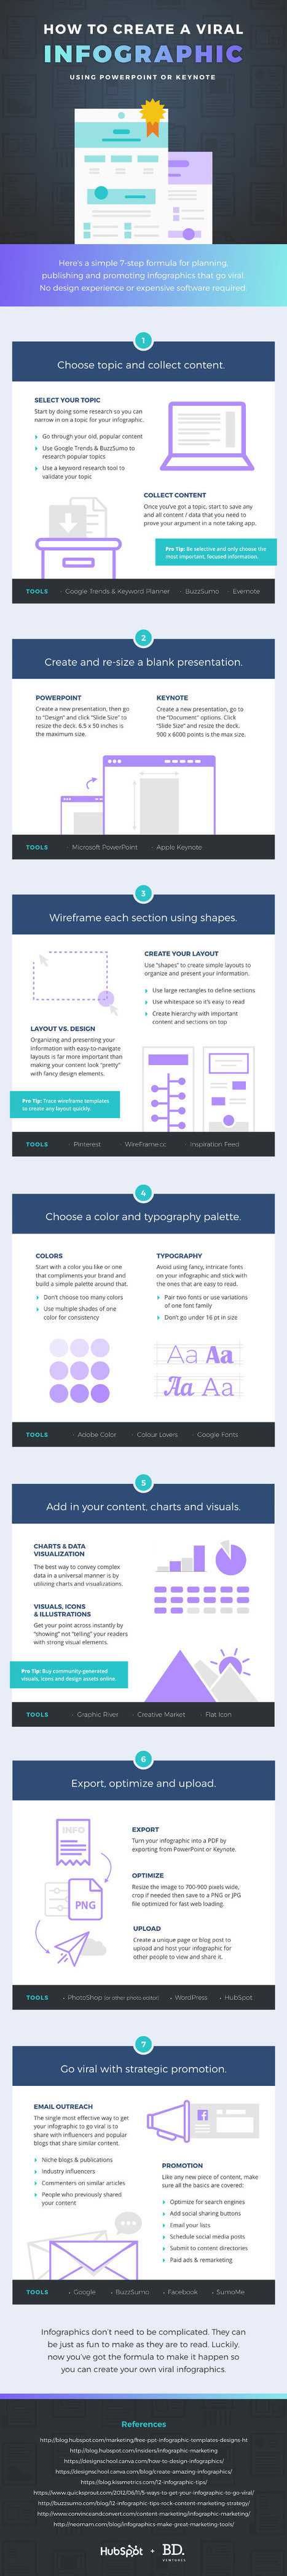 How to Create Infographics Using PowerPoint or Keynote [Infographic] | Integrated Brand Communications | Scoop.it